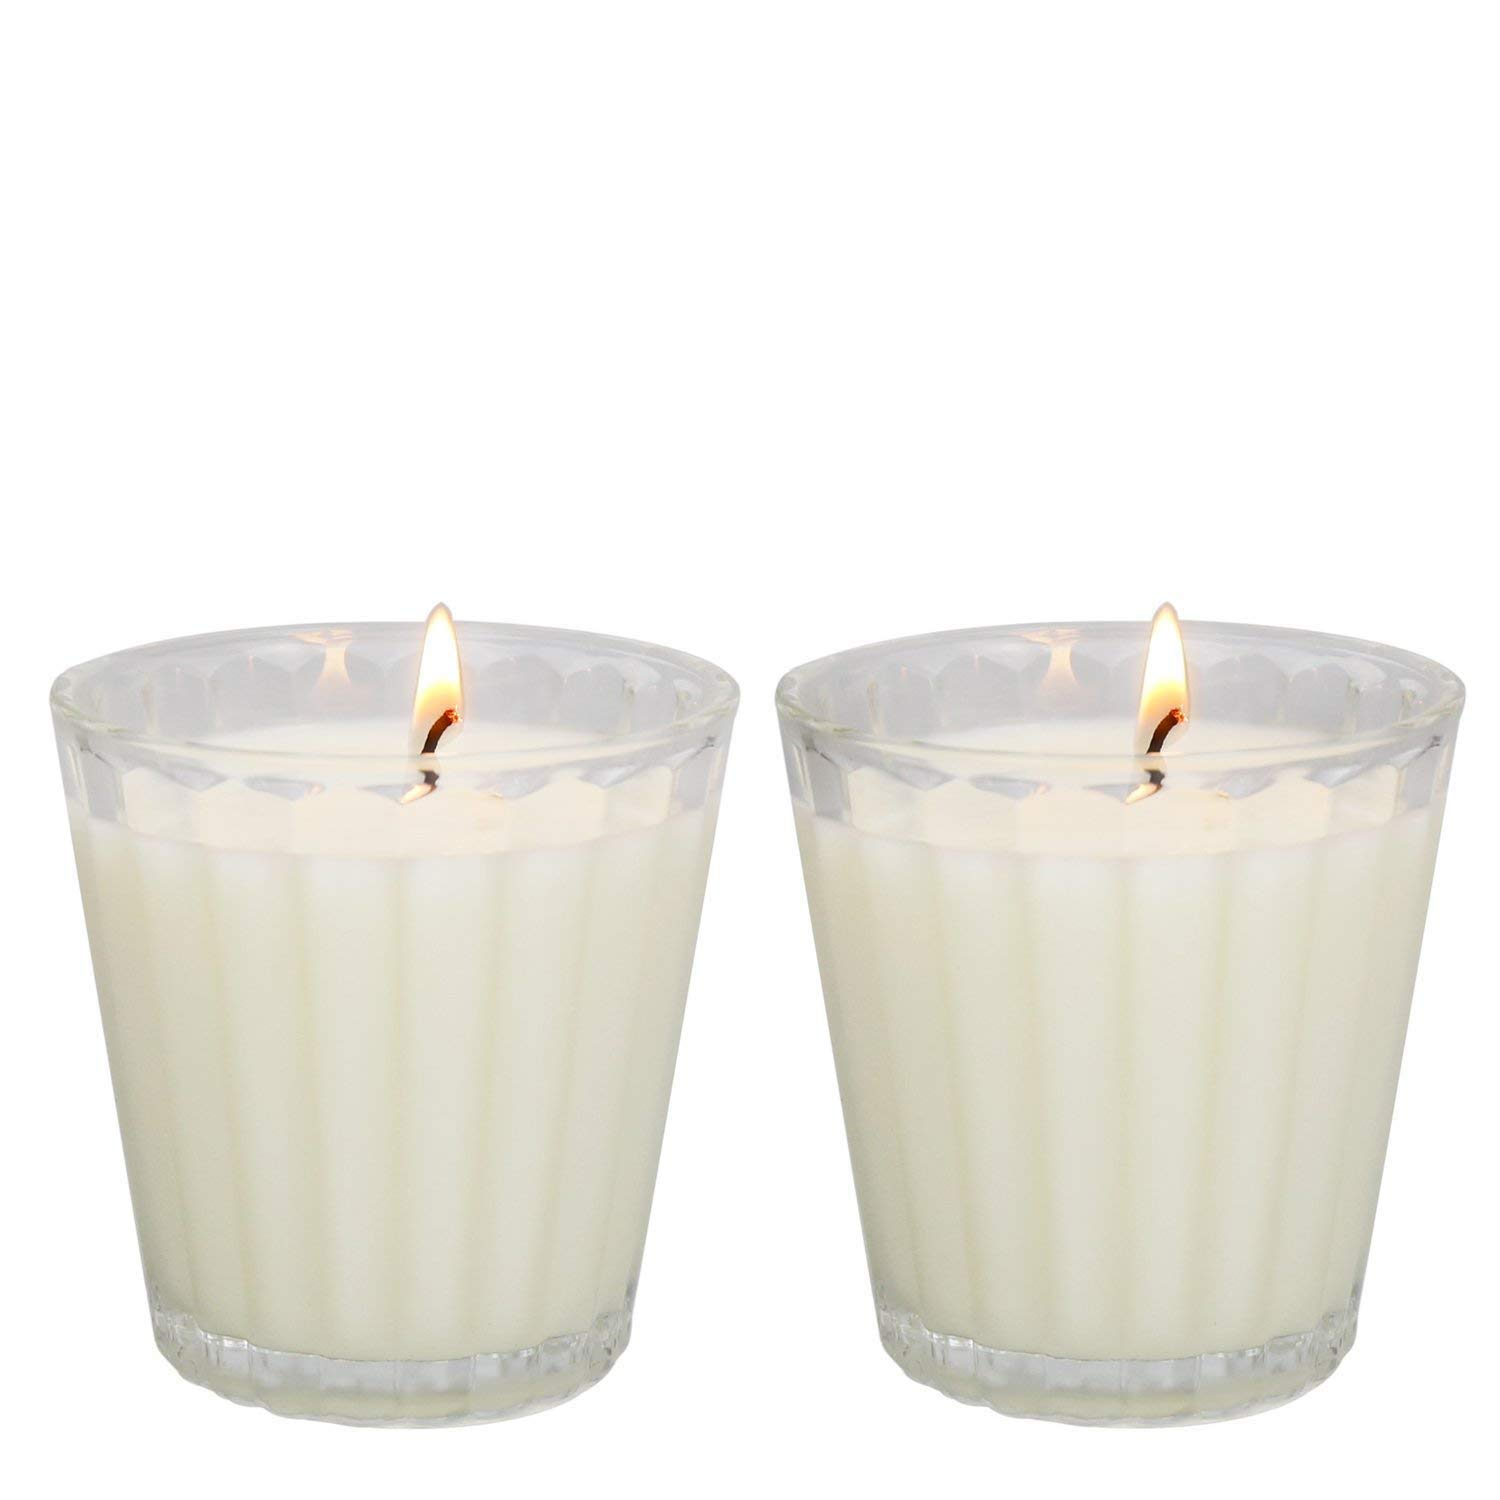 Citronella Candles Scented, Giant 1lb Natural Soy Wax, Glass Jar 4 oz, 25-30 Hour Burn, Natural Mosquito Repels, Outdoor Indoor by YIHANG